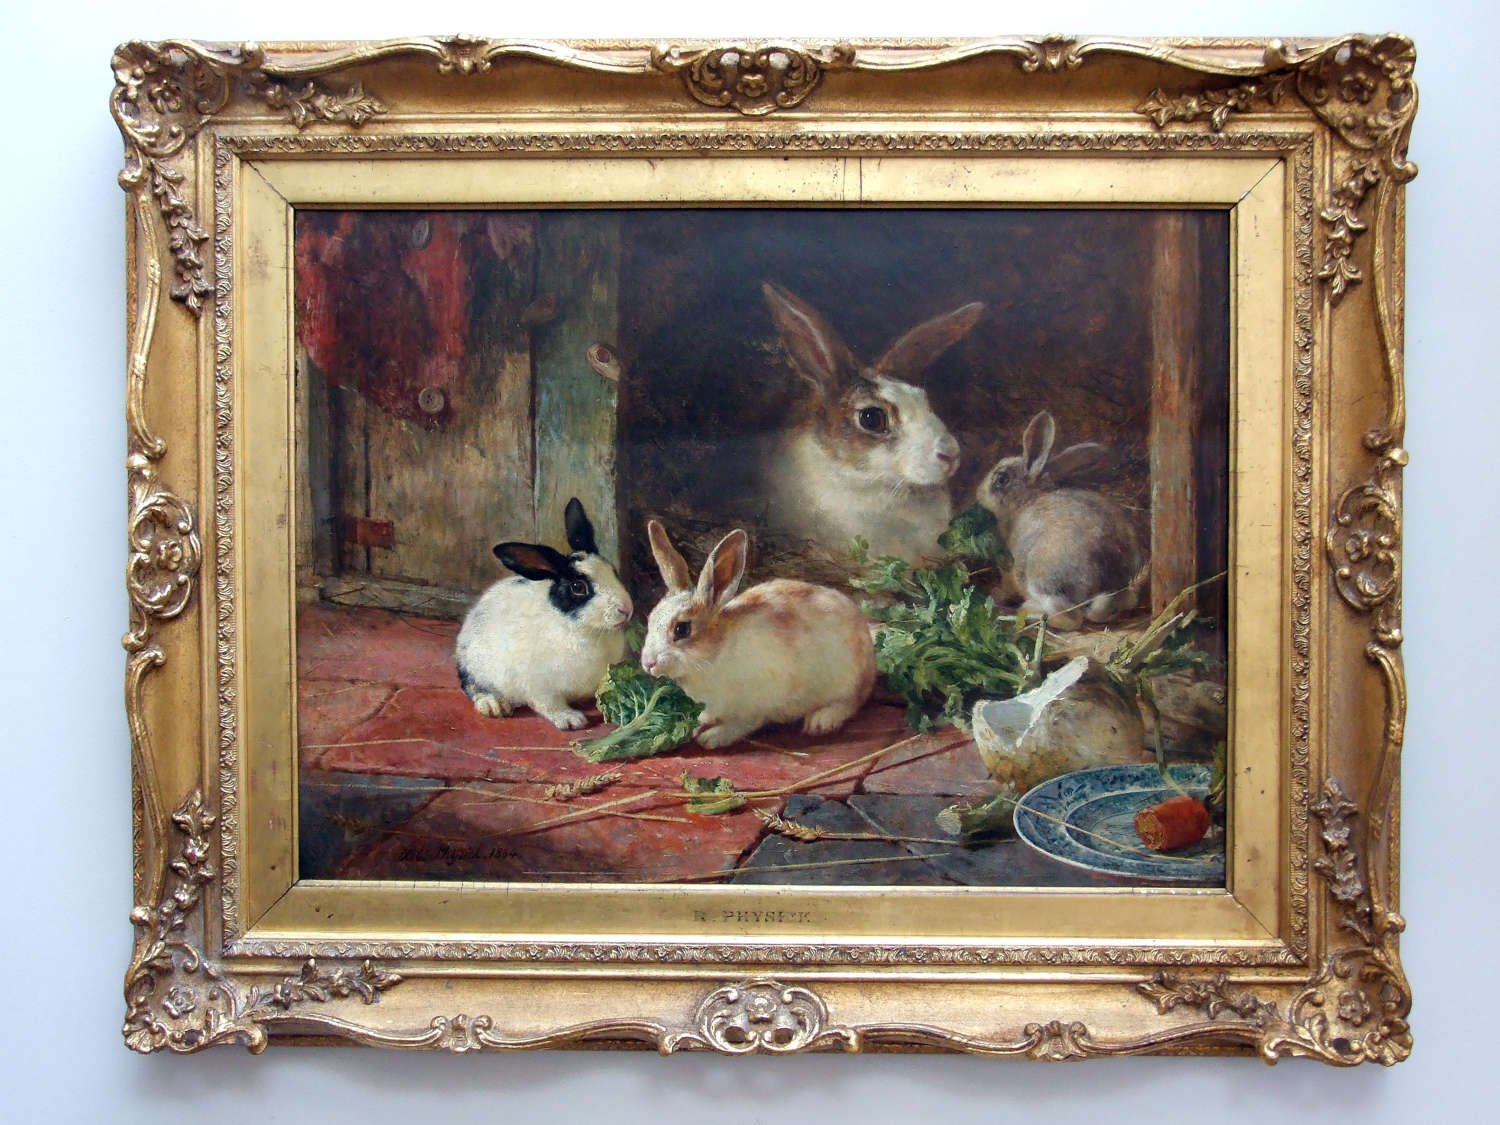 Extremely fine and rare oil painting of rabbits by Robert Physick 1864